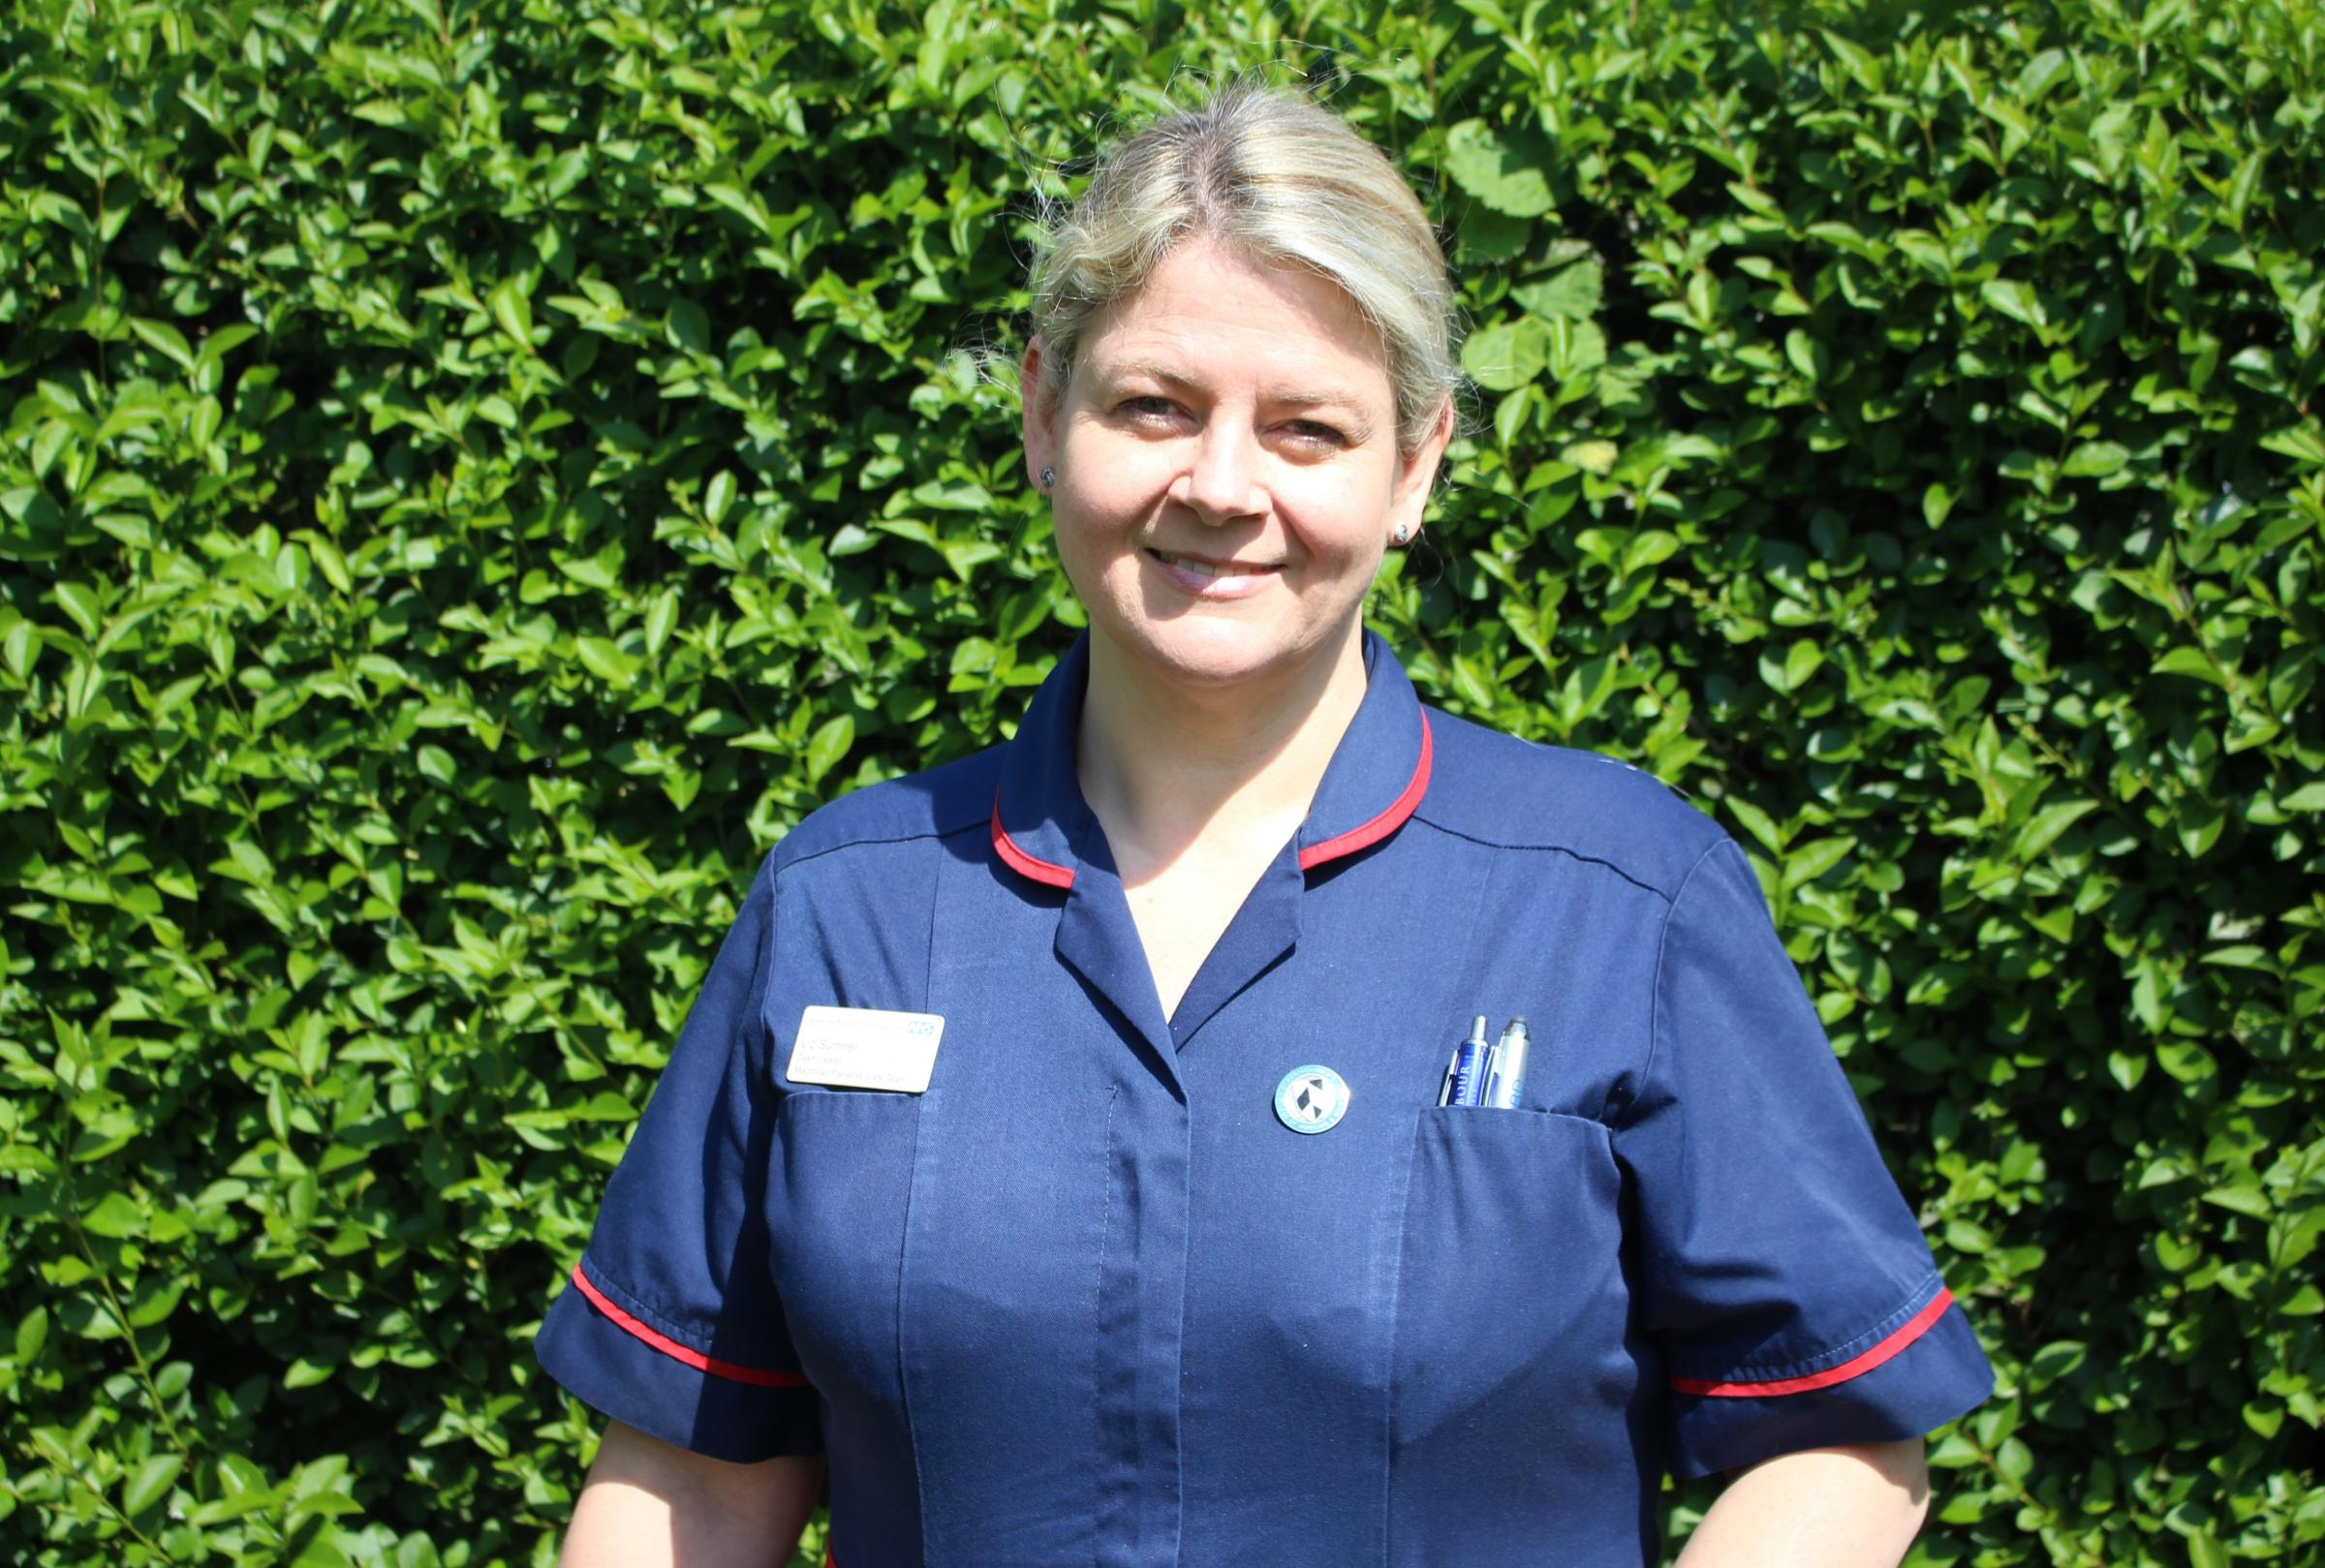 Palliative care team leader Liz Sumner